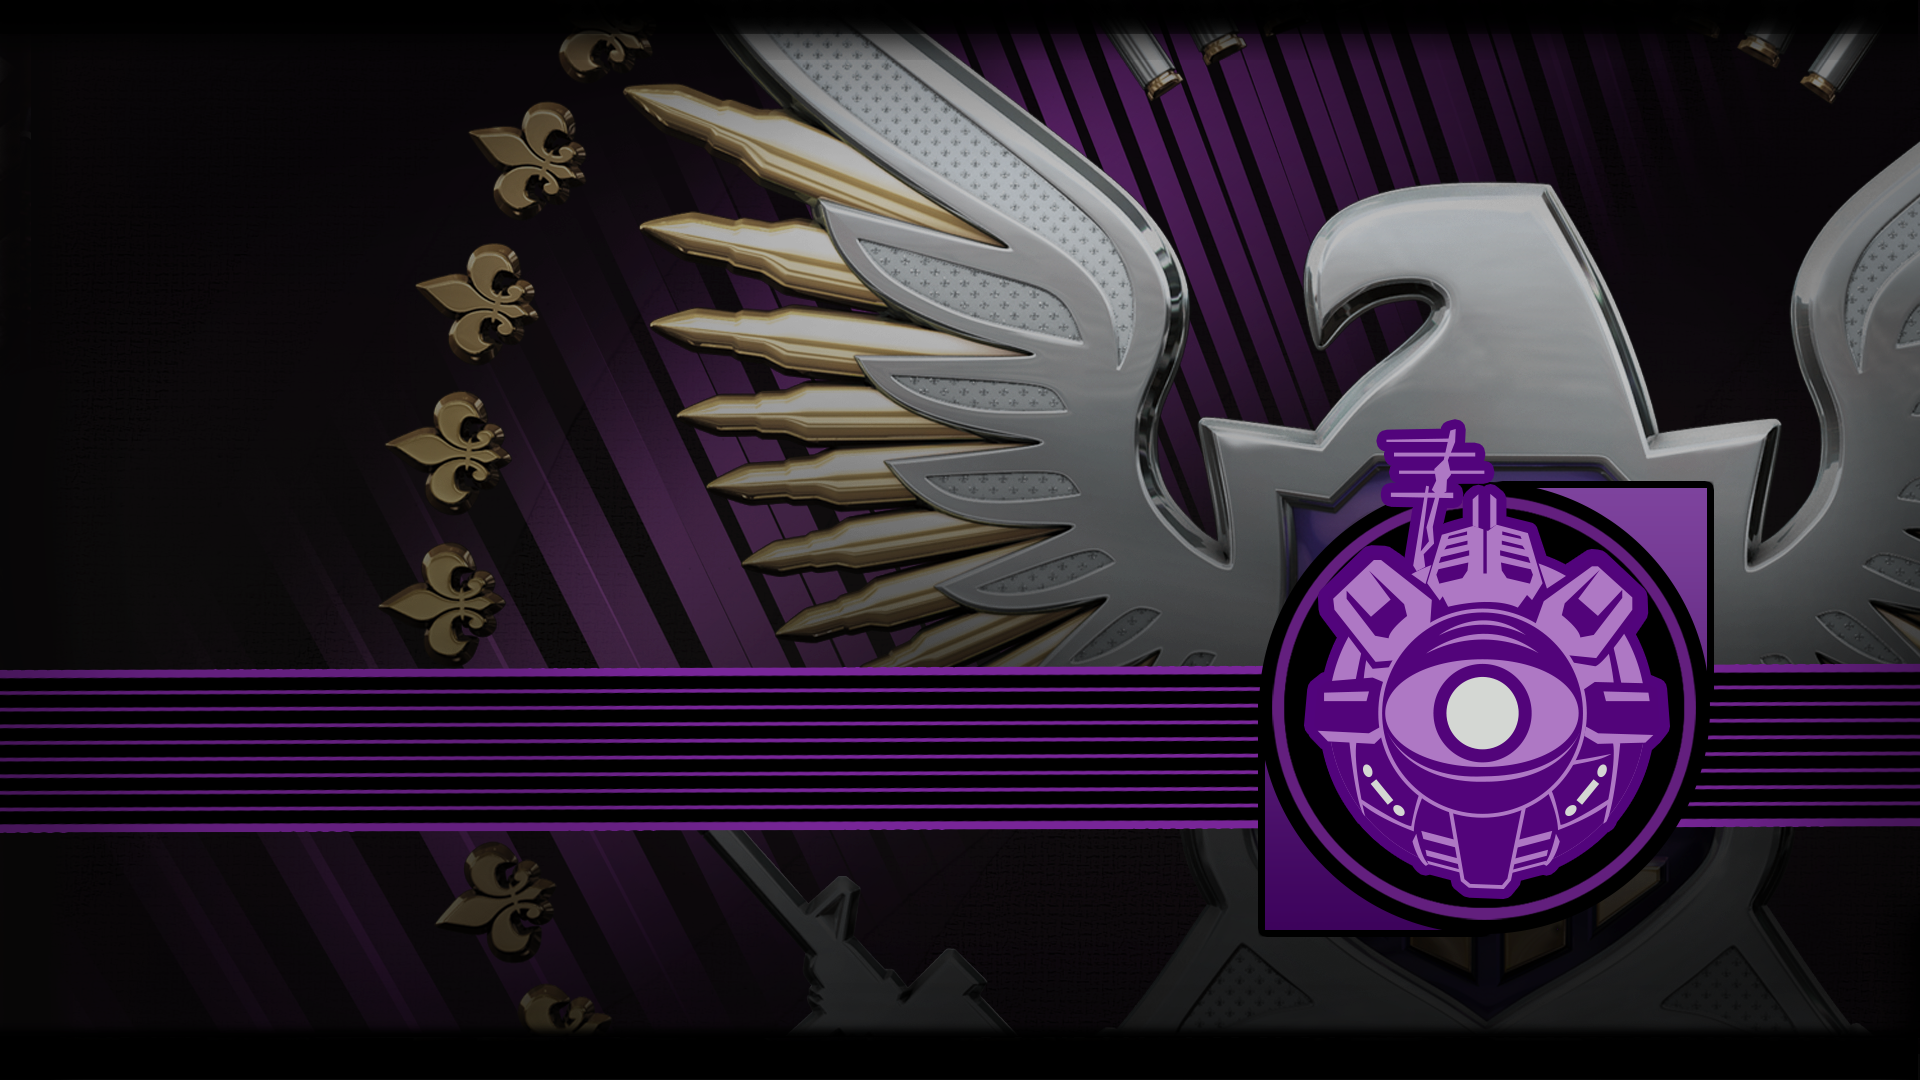 Machine Man achievement for Saints Row IV: Re-Elected on Xbox One